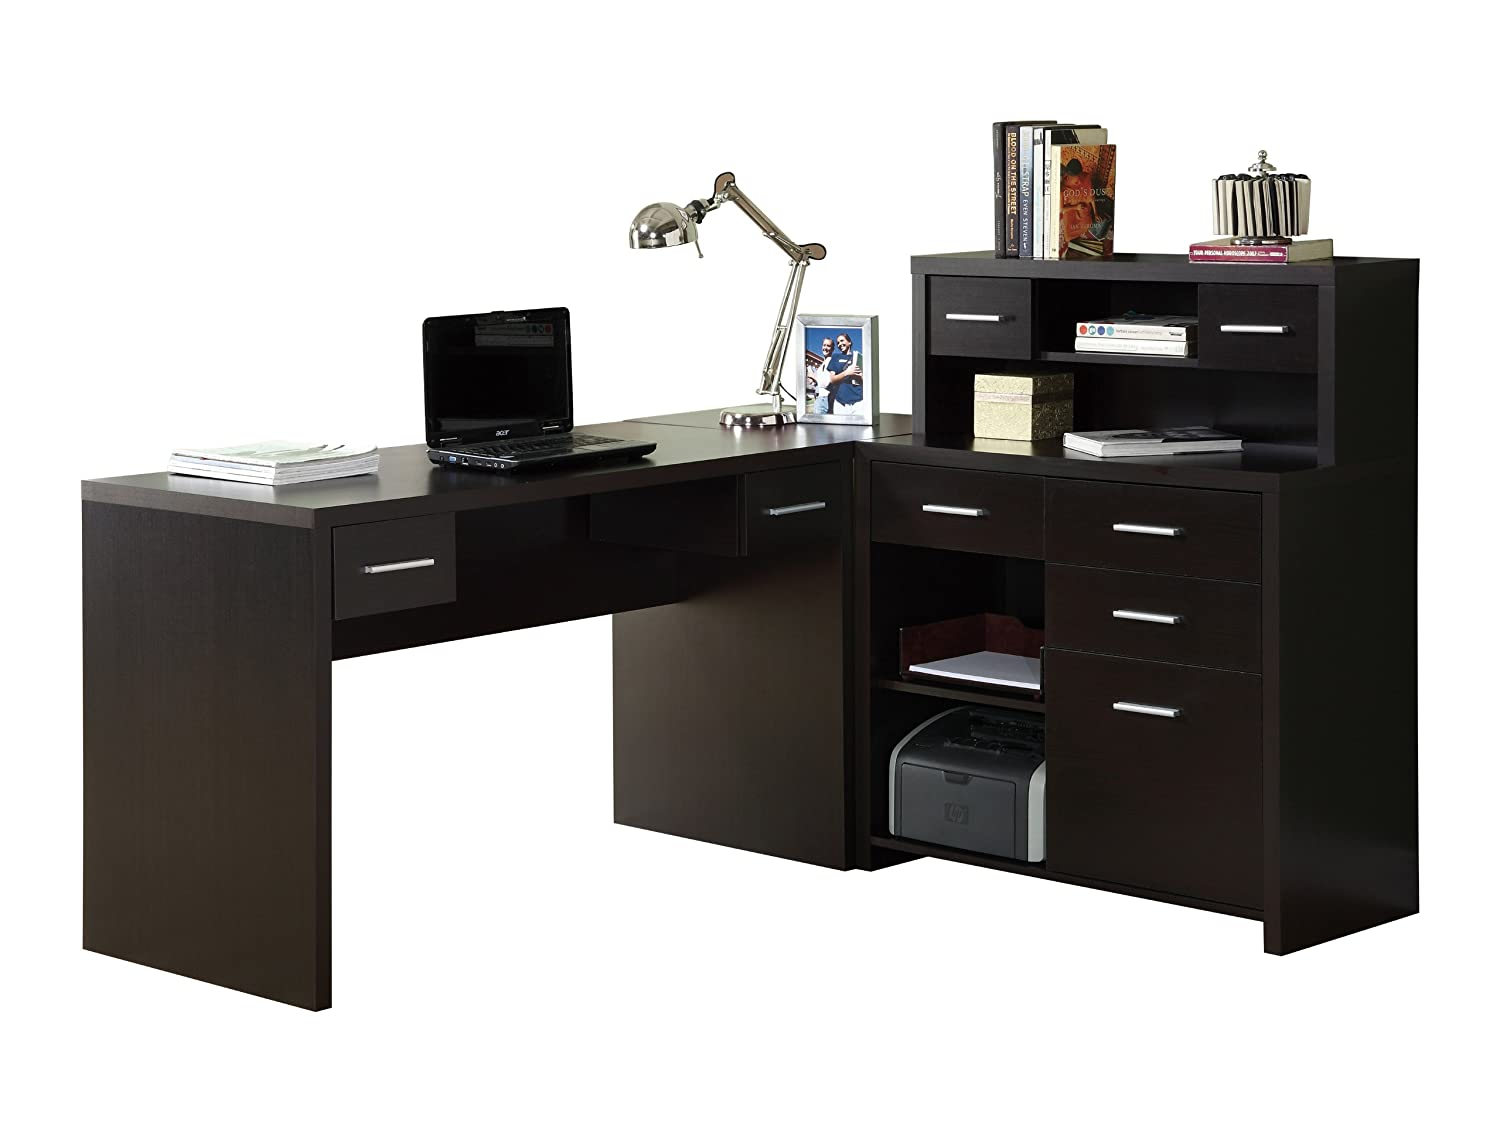 office desk corner awesome design desks unique fice x decor puter home set bedford cozy